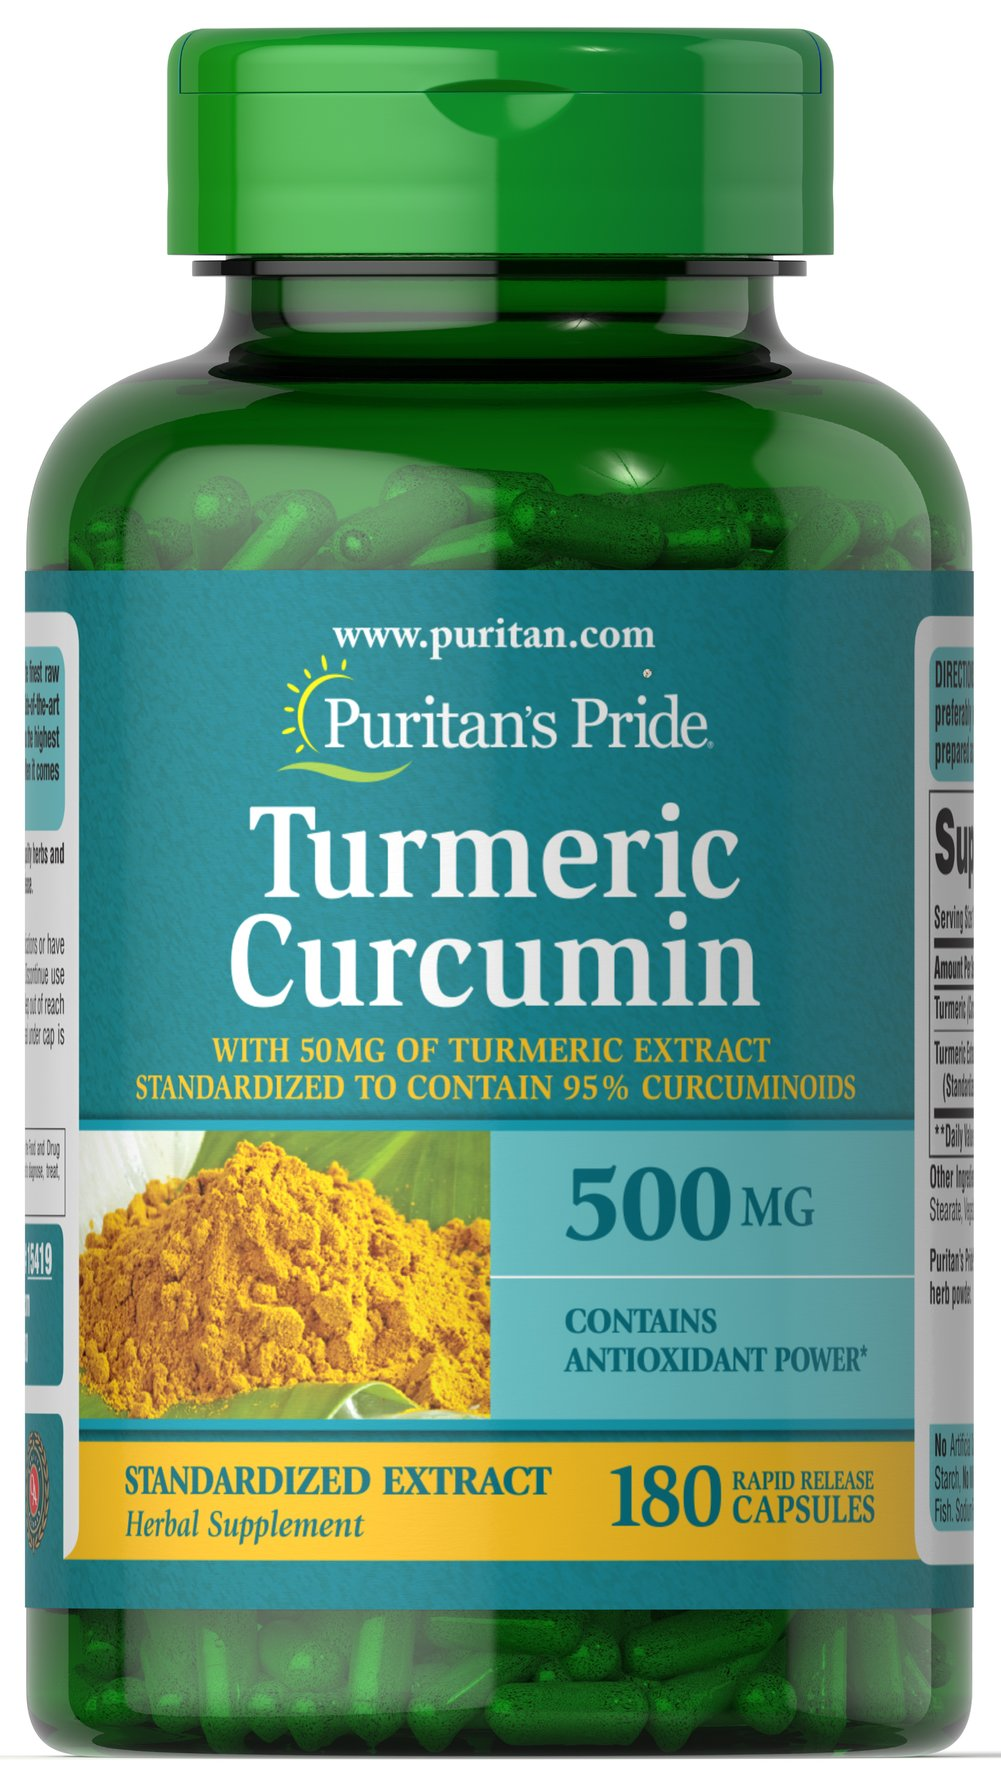 Tumeric Curcumin 450 mg <p> The active ingredients in Turmeric include beneficial flavonoids called Curcuminoids, which are plant-based antioxidants. **</p> <p>Contains antioxidants</p> 180 Capsules 450 mg $36.99